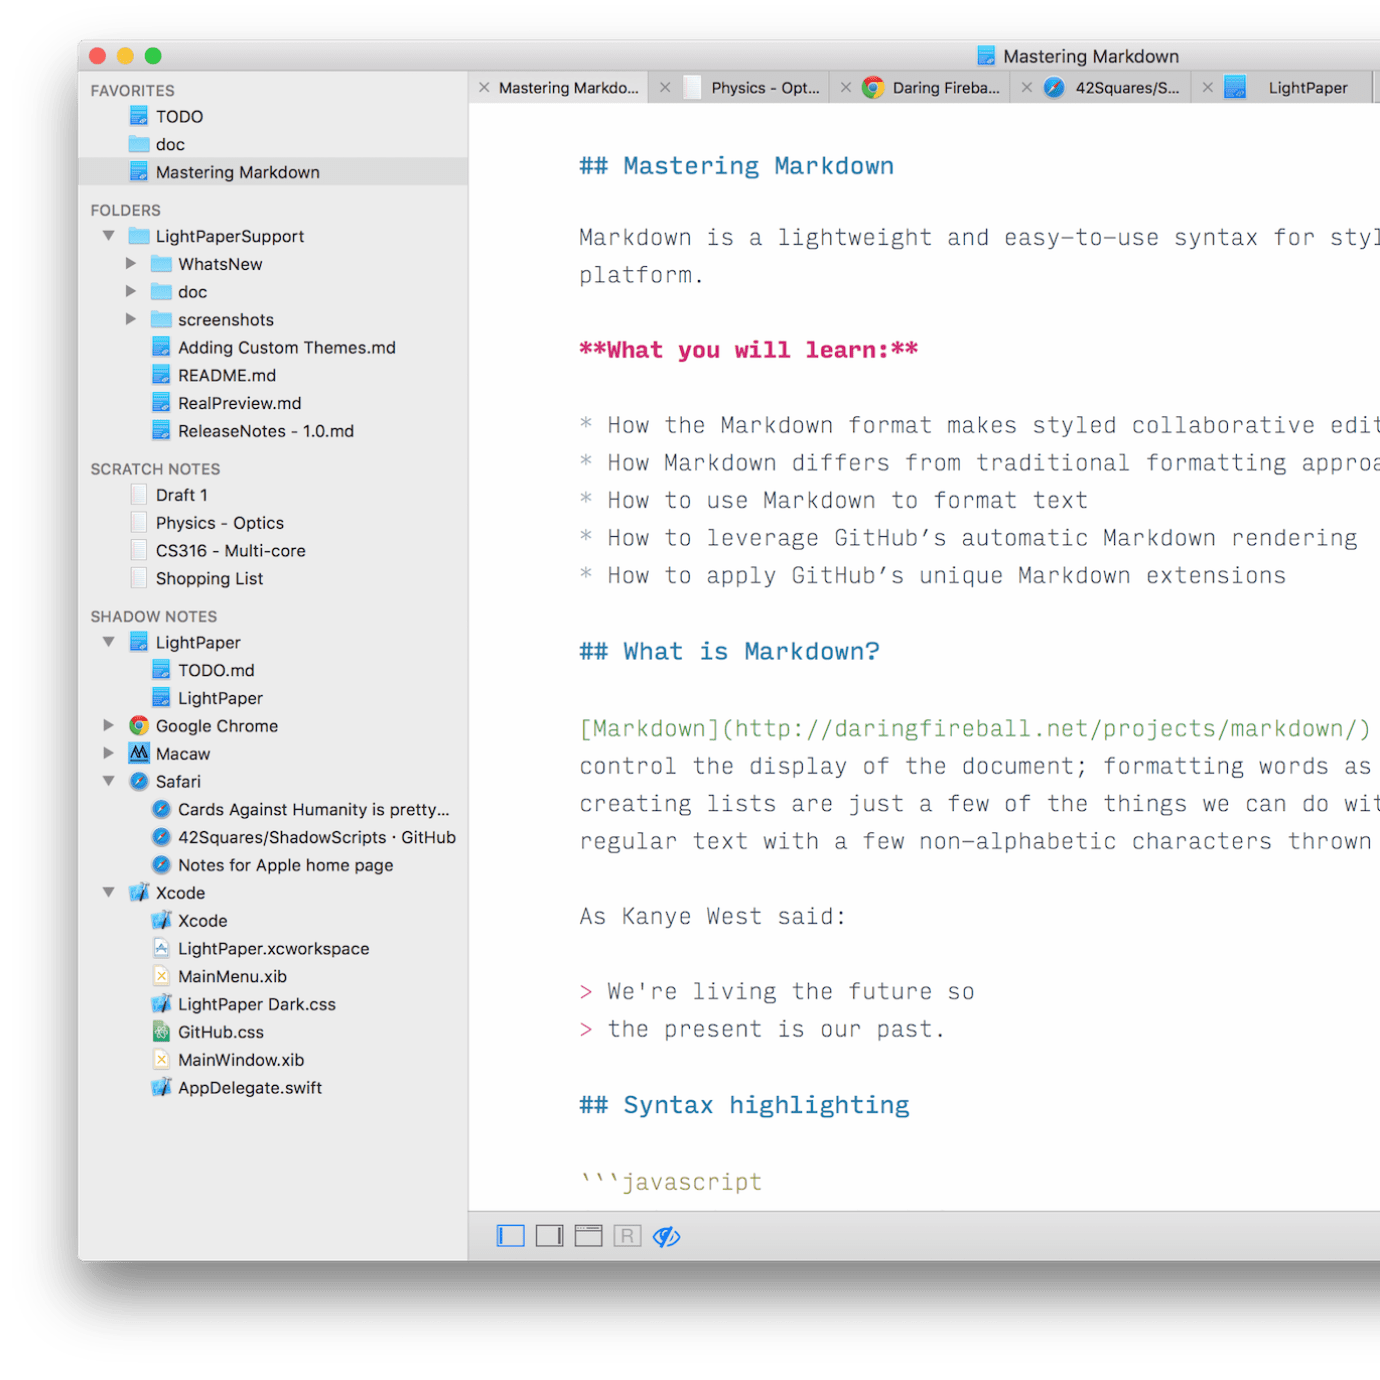 LightPaper - Probably the best text+markdown editor for your Mac